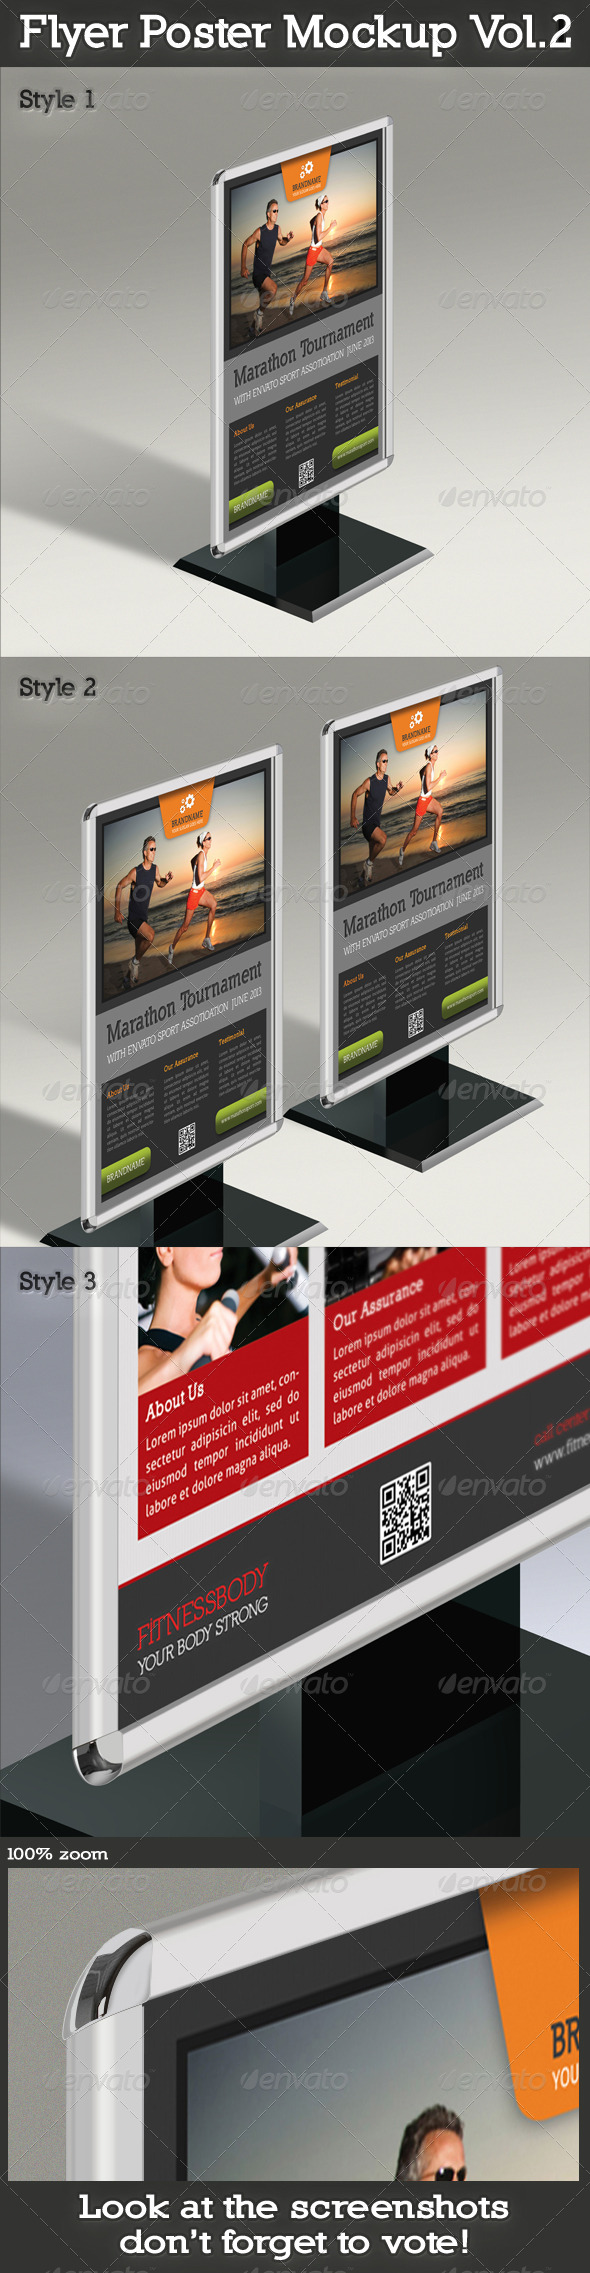 Flyer And Poster Mockup Vol.2 - Posters Print